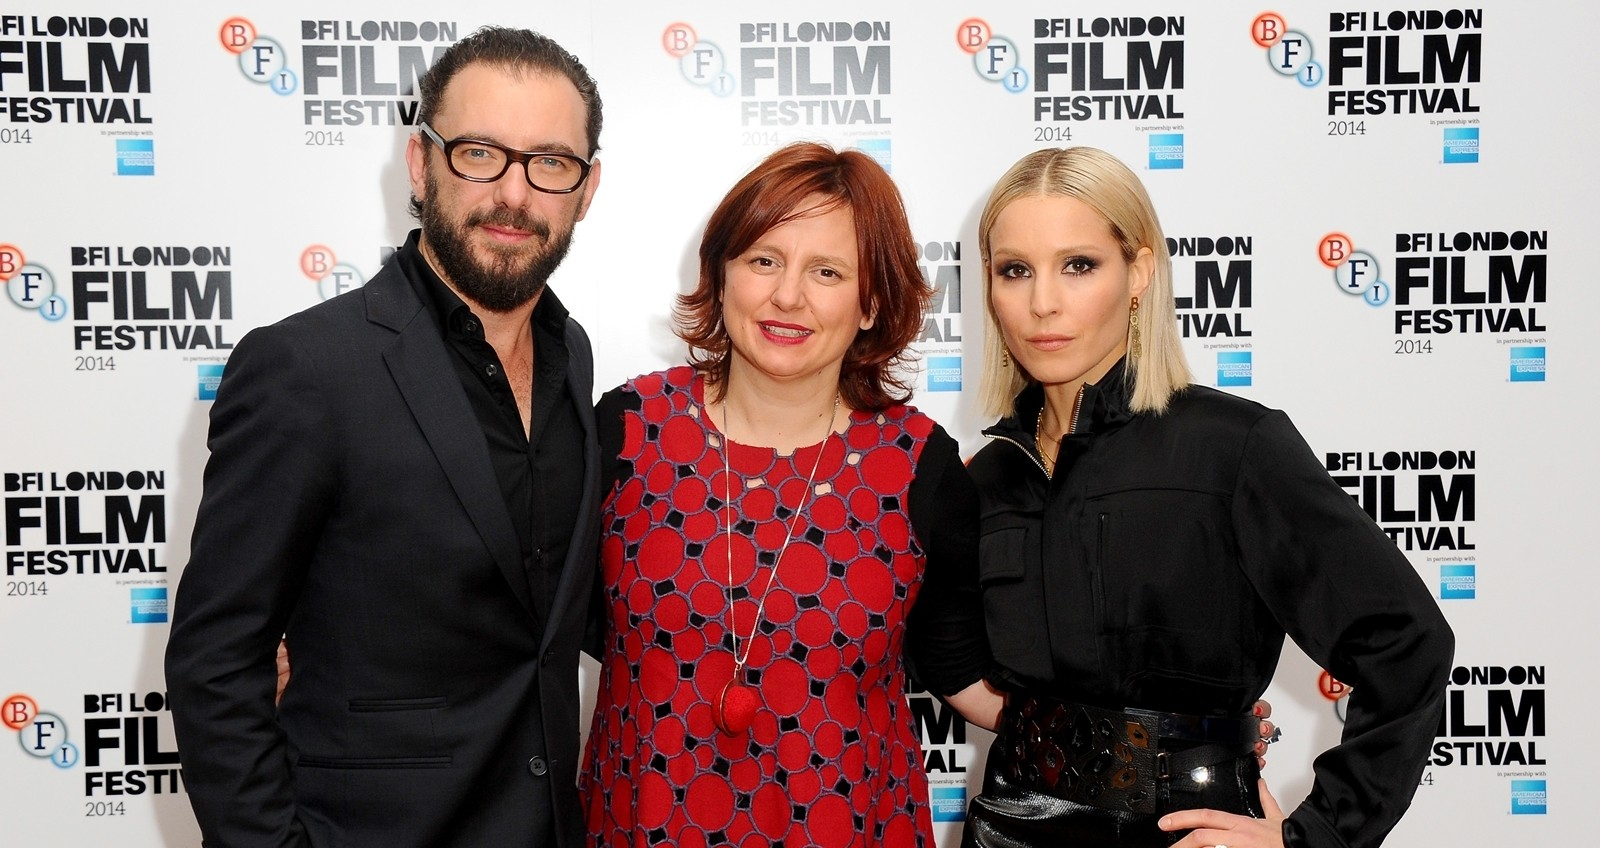 The Drop Premiere LFF - Noomi Rapace